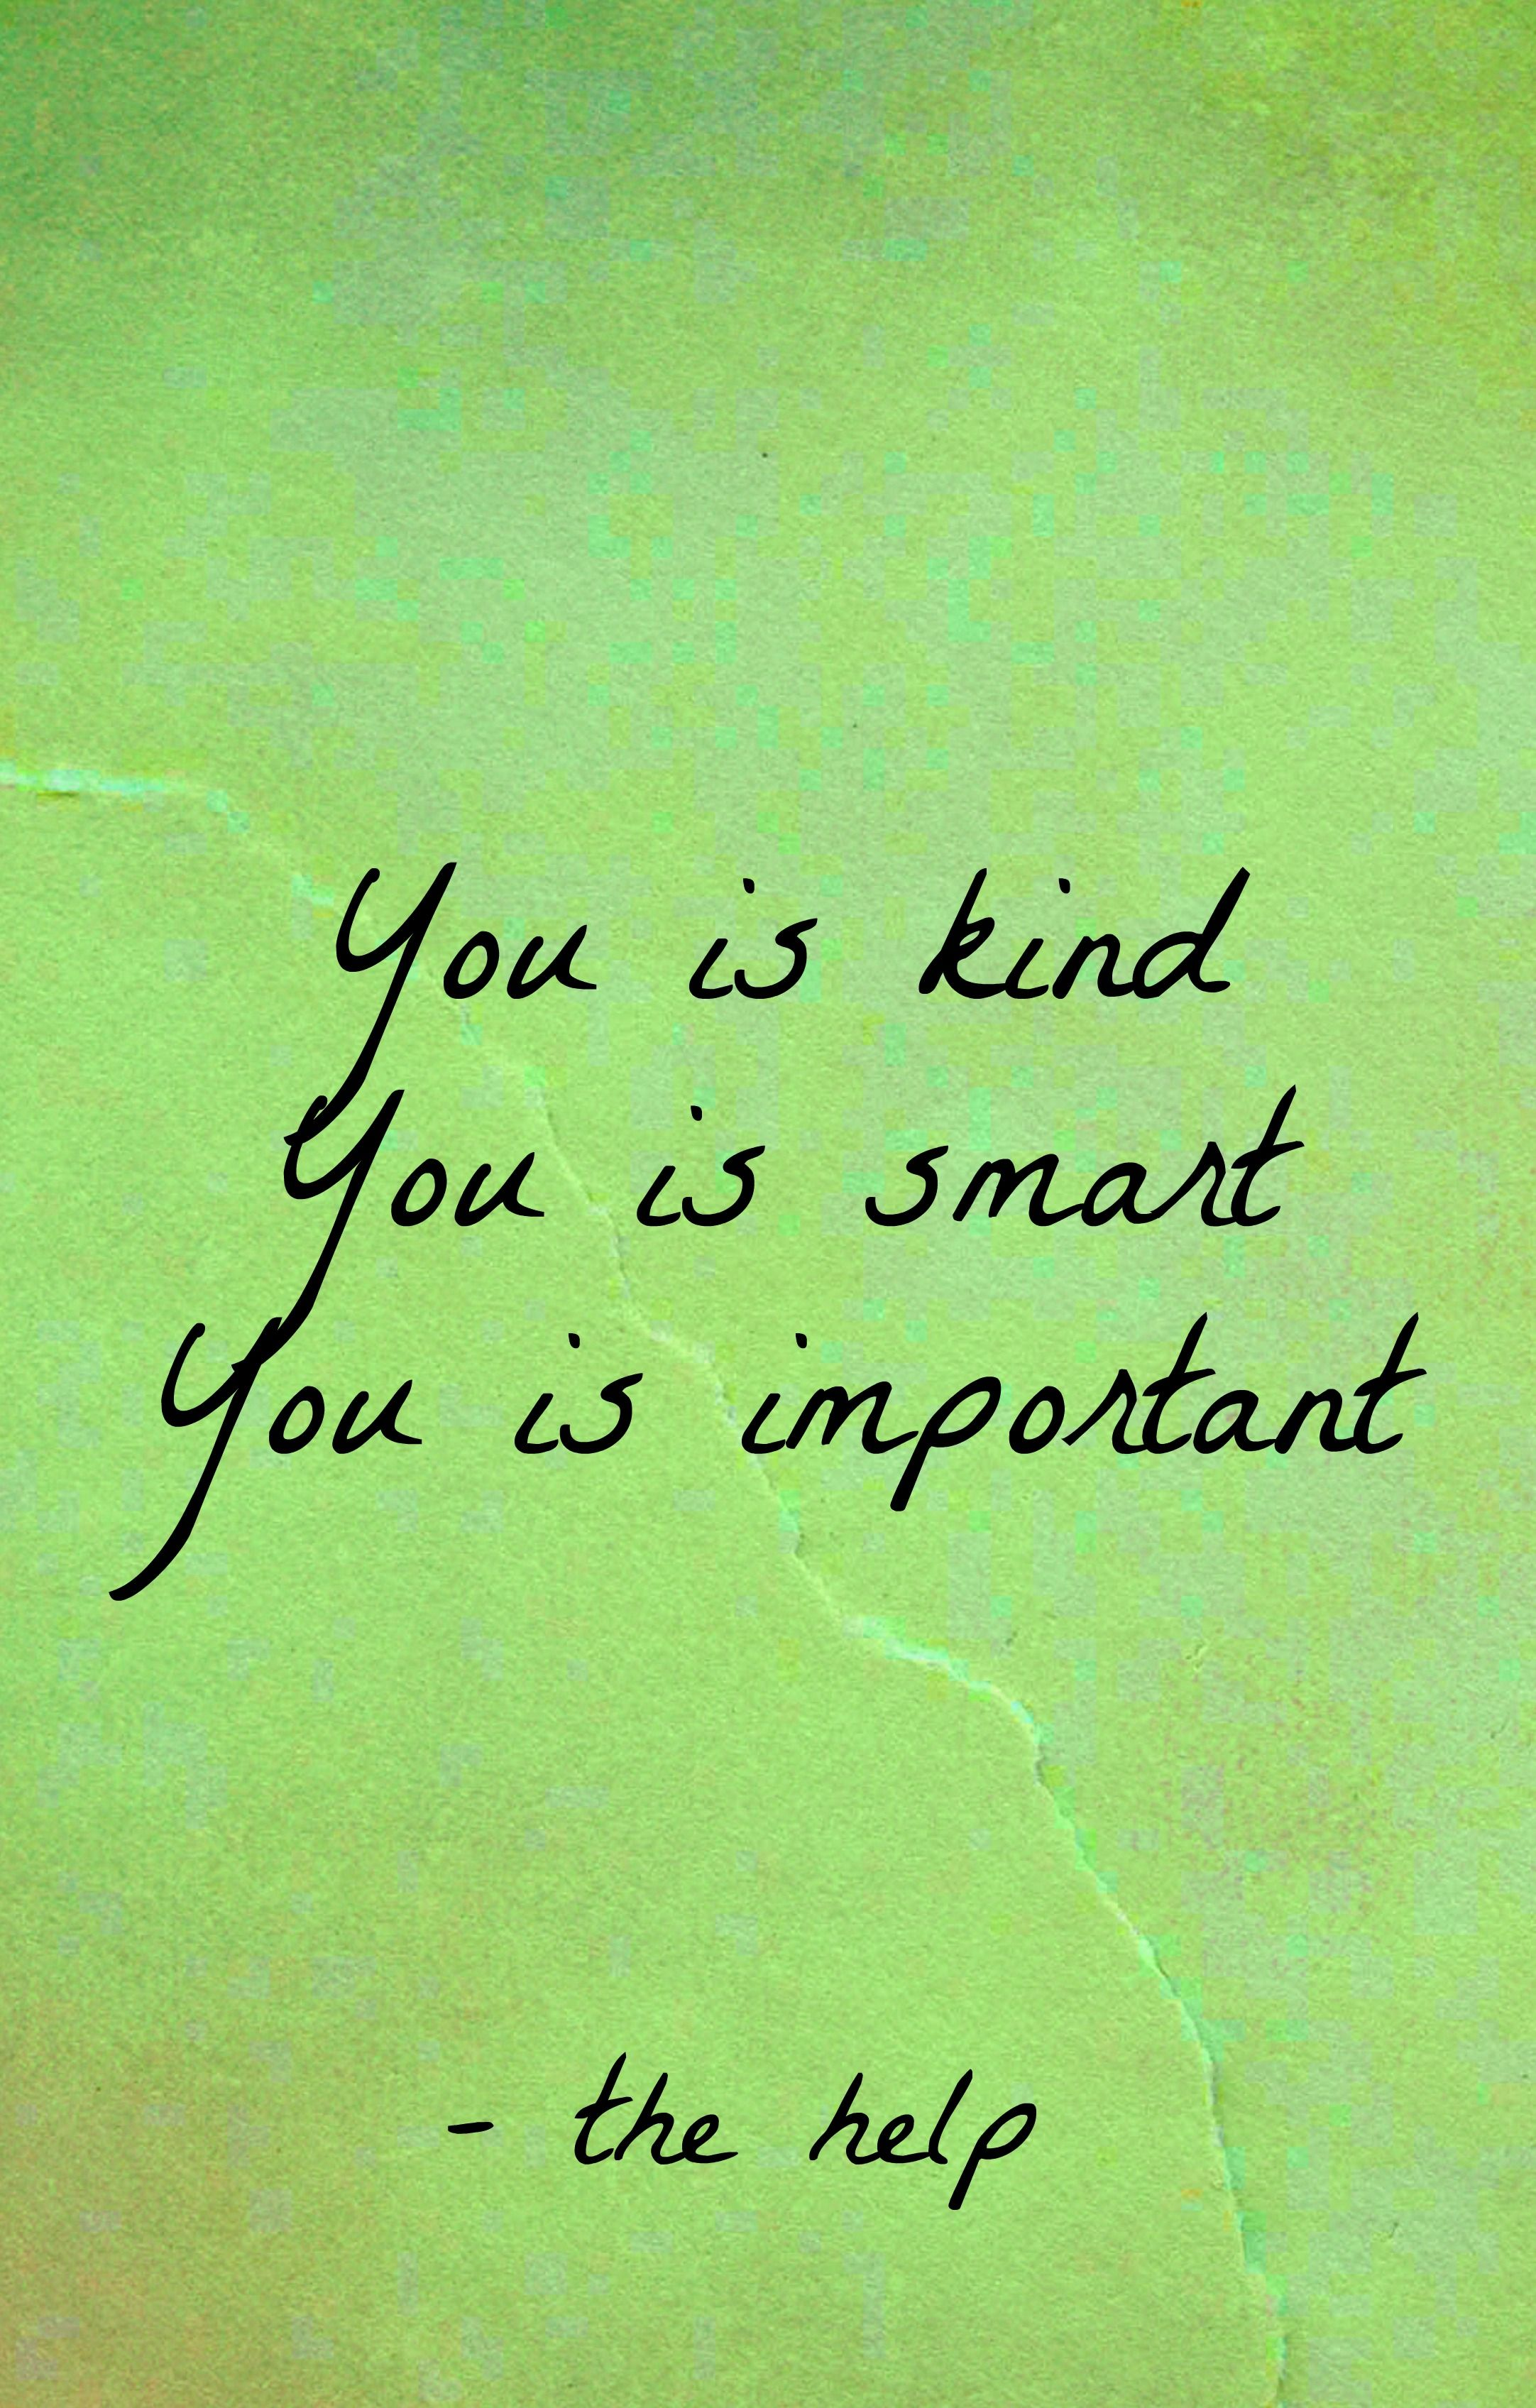 Quotes From The Movie The Help You Is Kind You Is Smart You Is Important The Help  Wisdom